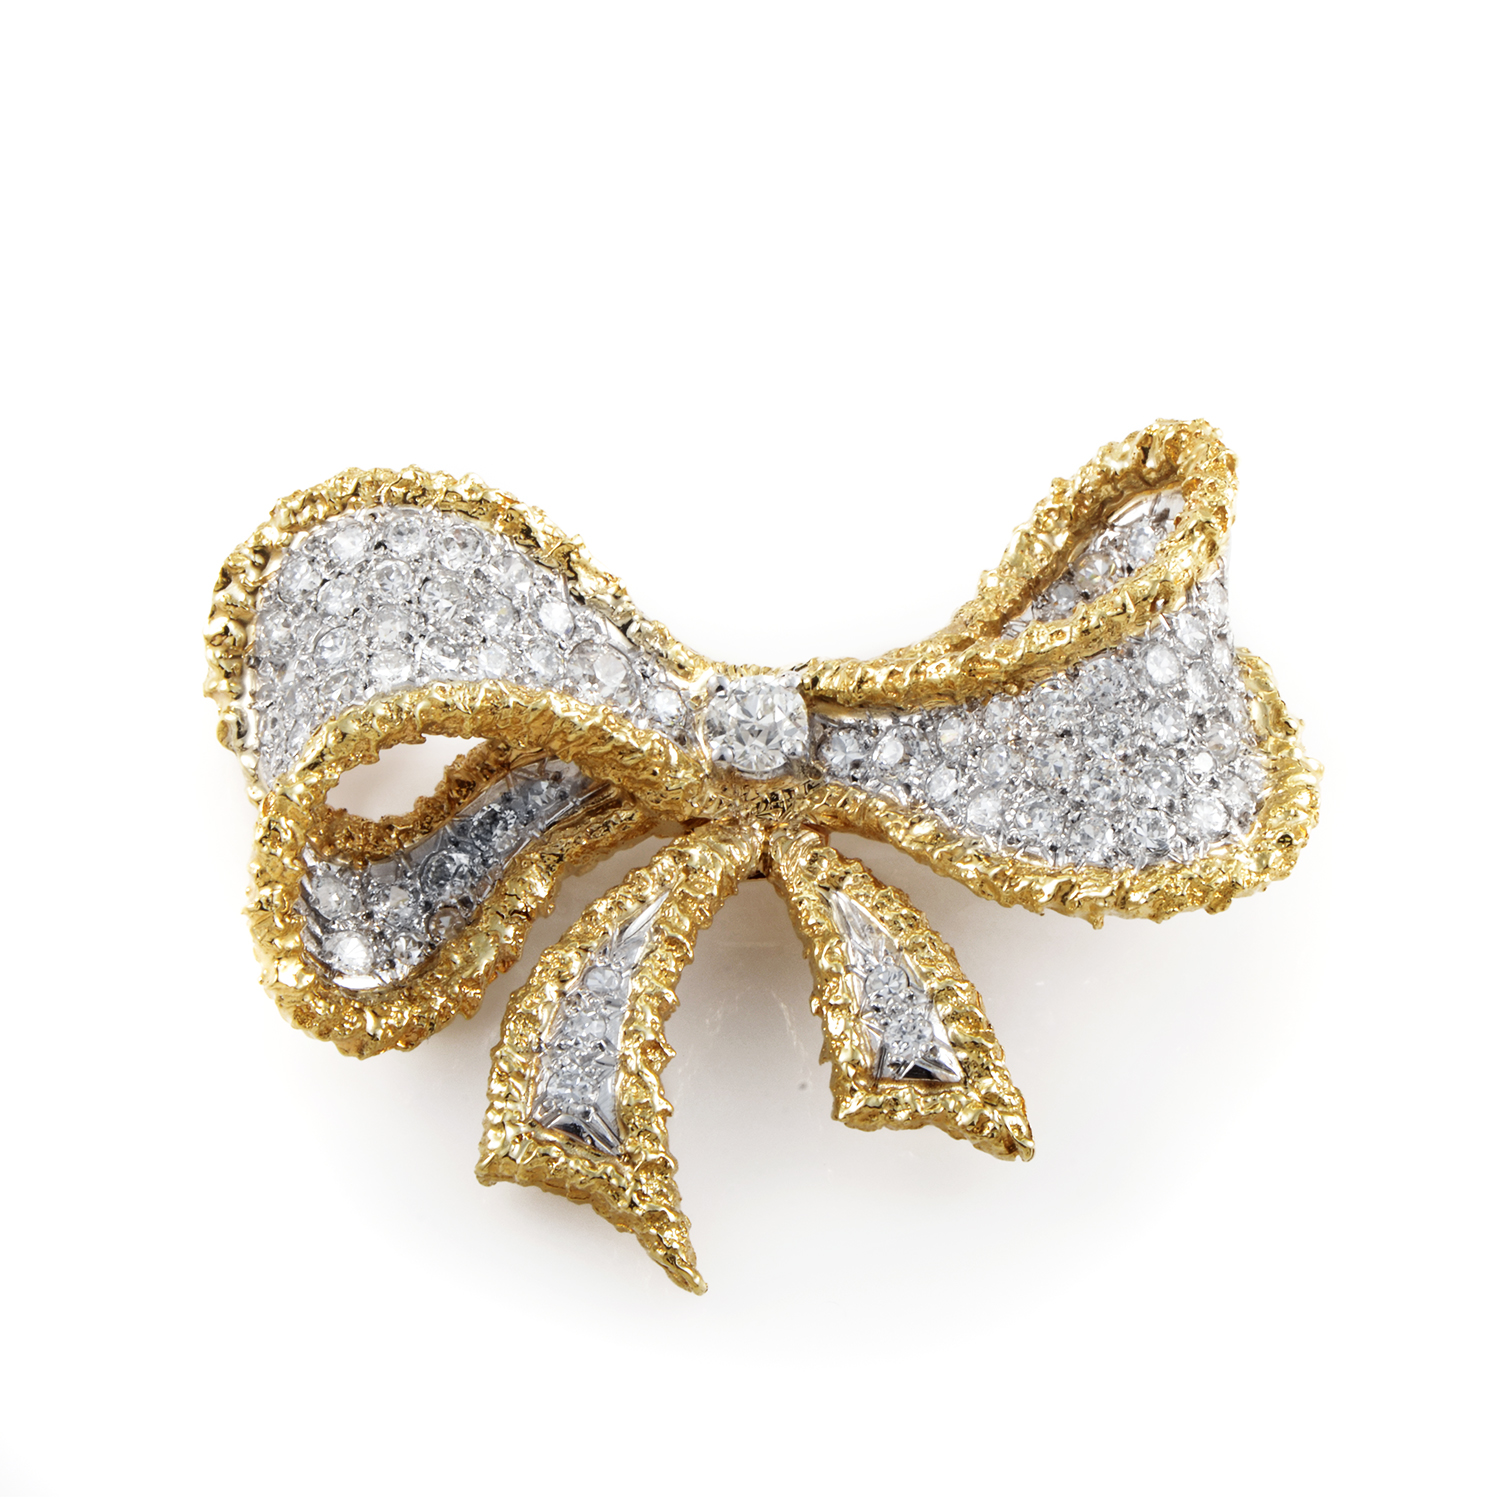 Cellino Women's Vintage 18K Yellow Gold & Platinum Diamond Bow Brooch